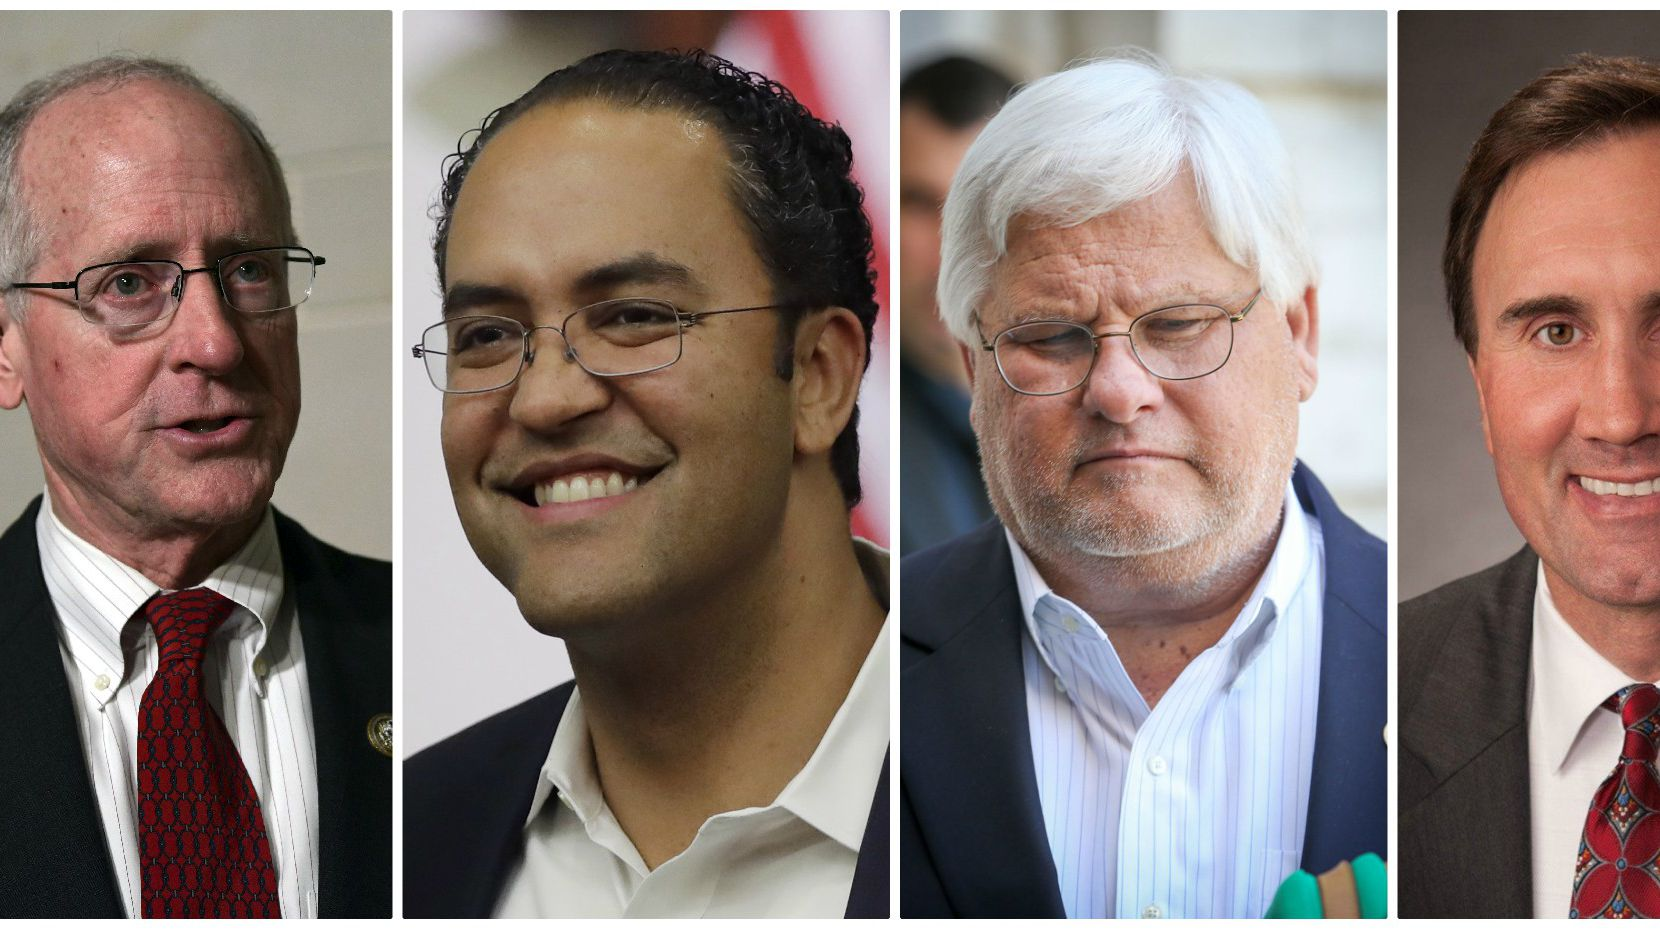 Four Texas Republicans in Congress recently announced that they would not seek reelection next year: from left, Rep. Mike Conaway of Midland, Rep. Will Hurd of San Antonio, Rep. Kenny Marchant of Coppell and Rep. Pete Olson of Sugar Land. (AP Photo/Susan Walsh; AP Photo/Eric Gray; Virginie LeFour/Belga/Zuma Press/TNS; Austin American-Statesman/TNS)